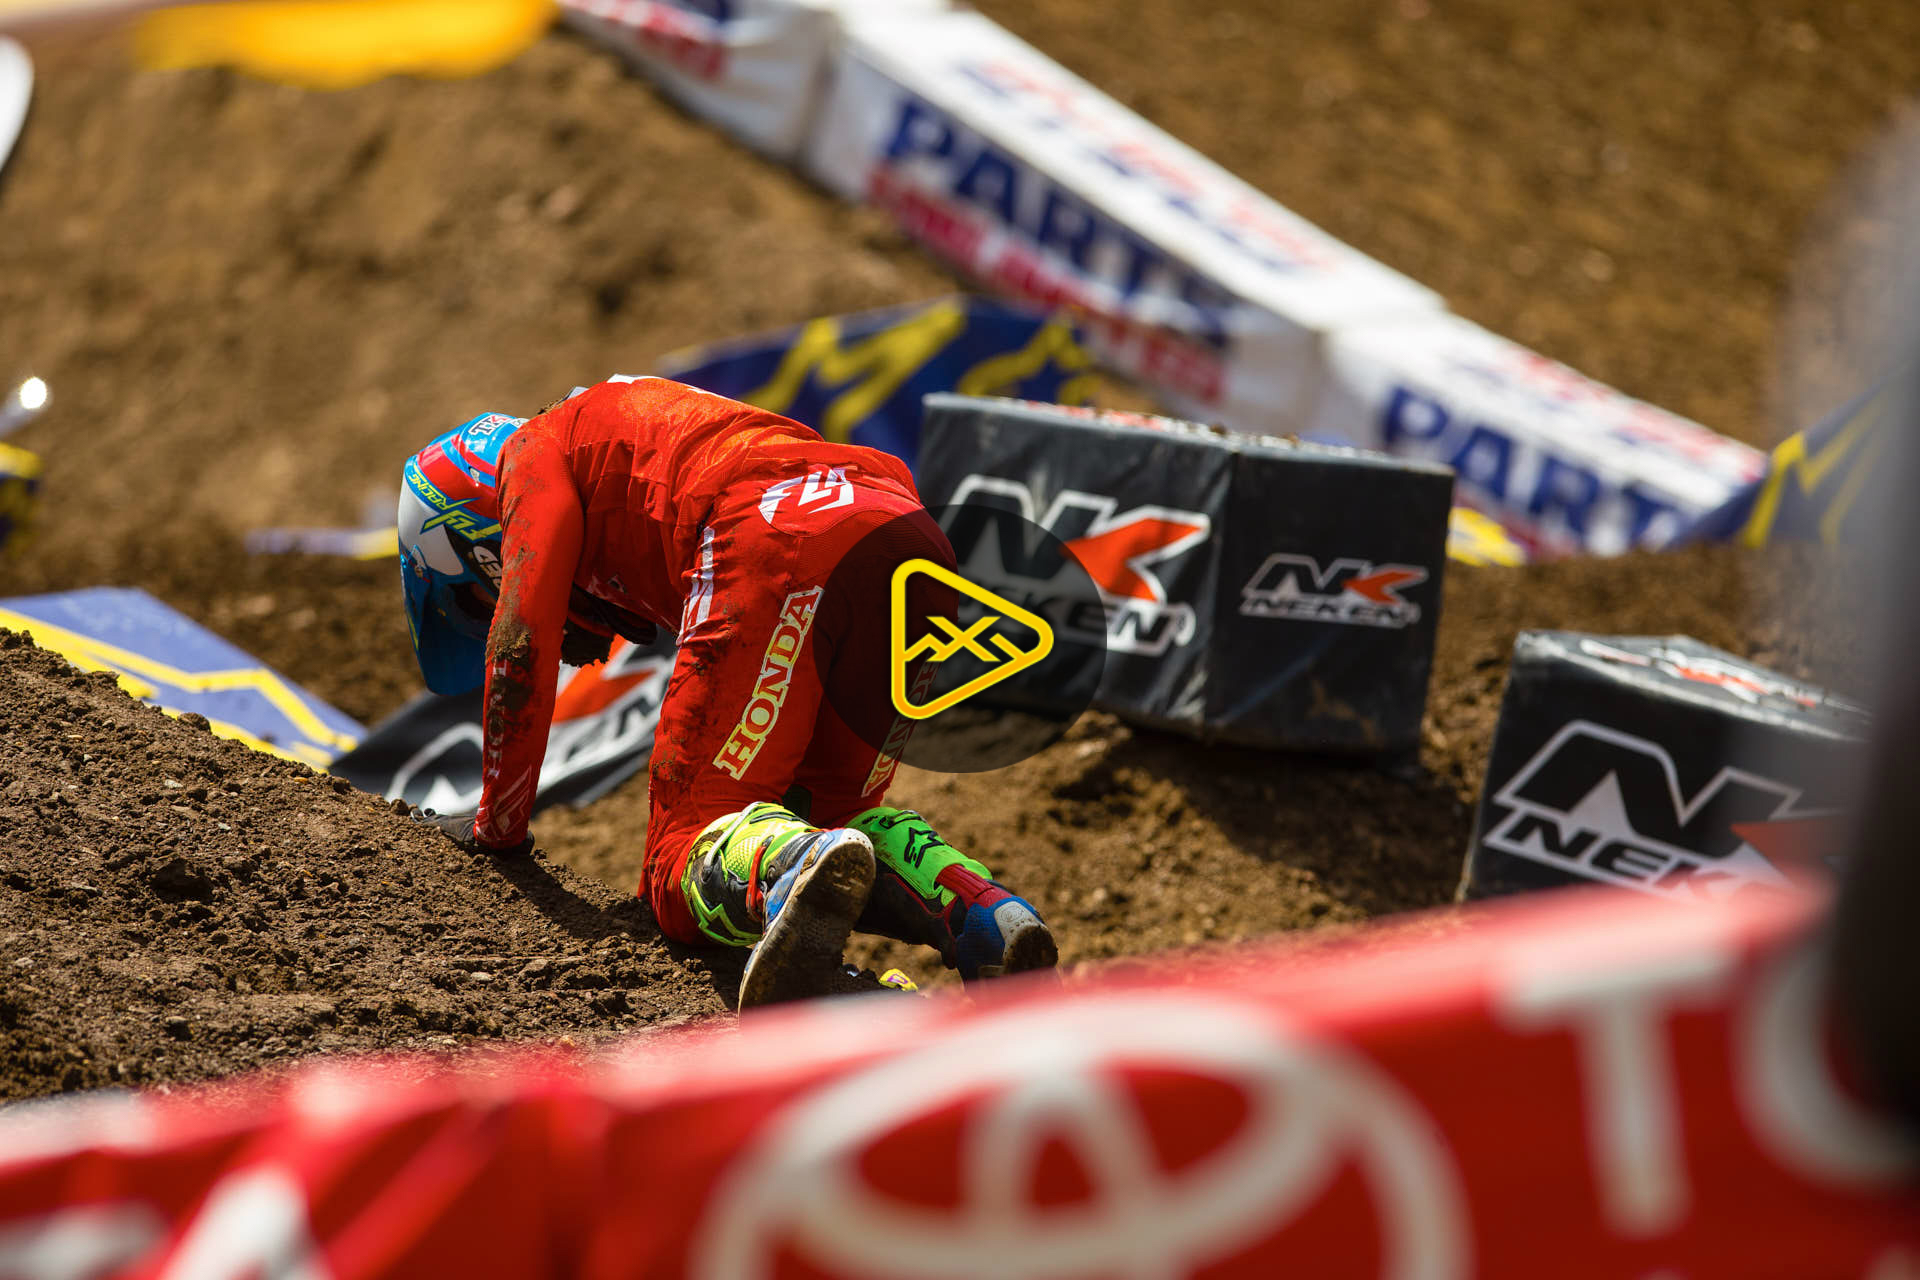 Scary Trey Canard Crash from 2016 East Rutherford Supercross